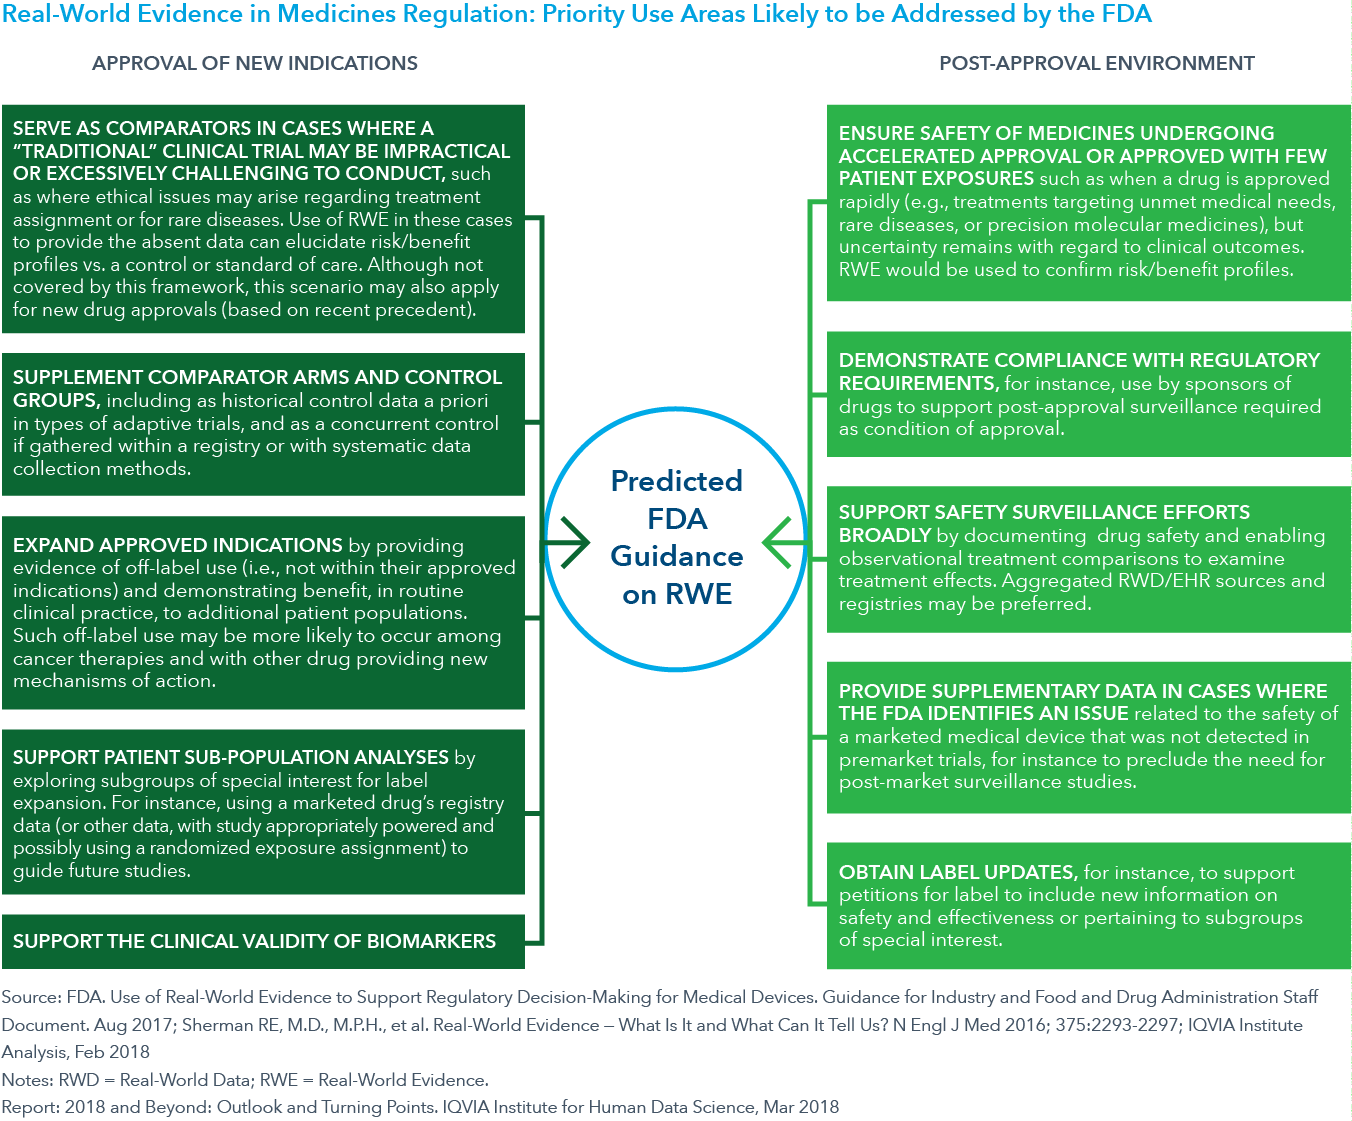 Chart 1: Real-World Evidence in Medicines Regulation: Priority Use Areas Likely to be Addressed by the FDA